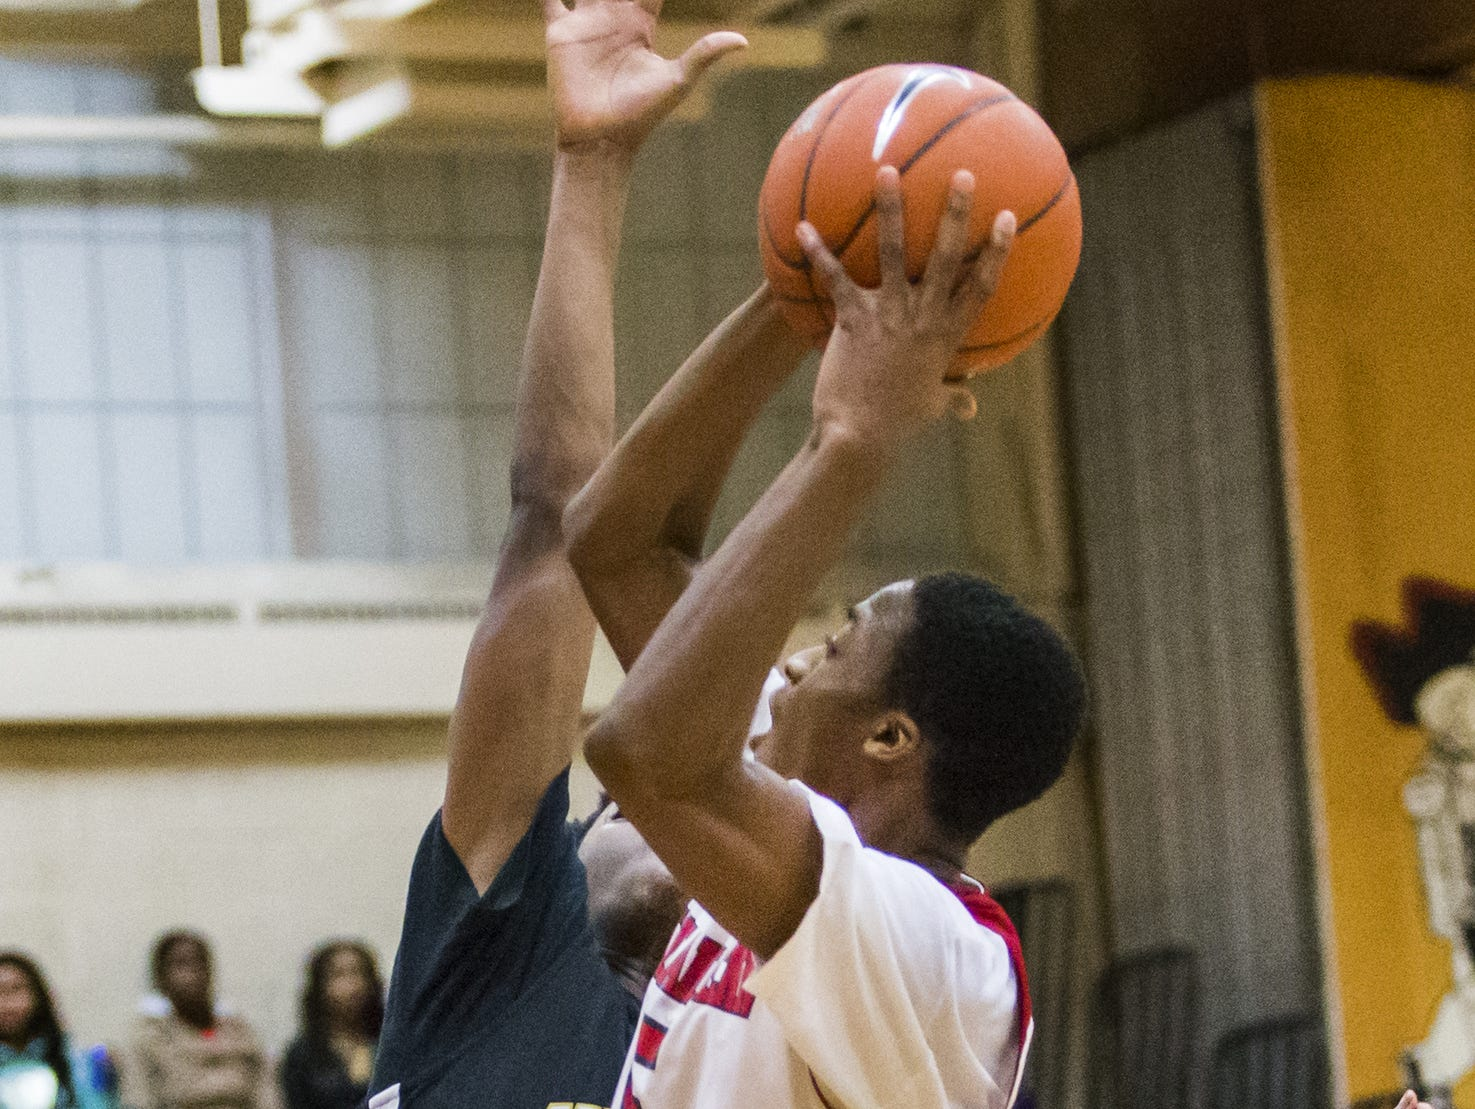 William Penn's Ny'Jere Hodges puts up a shot in the second half of William Penn's 47-28 win over Newark at William Penn High School on Thursday night.